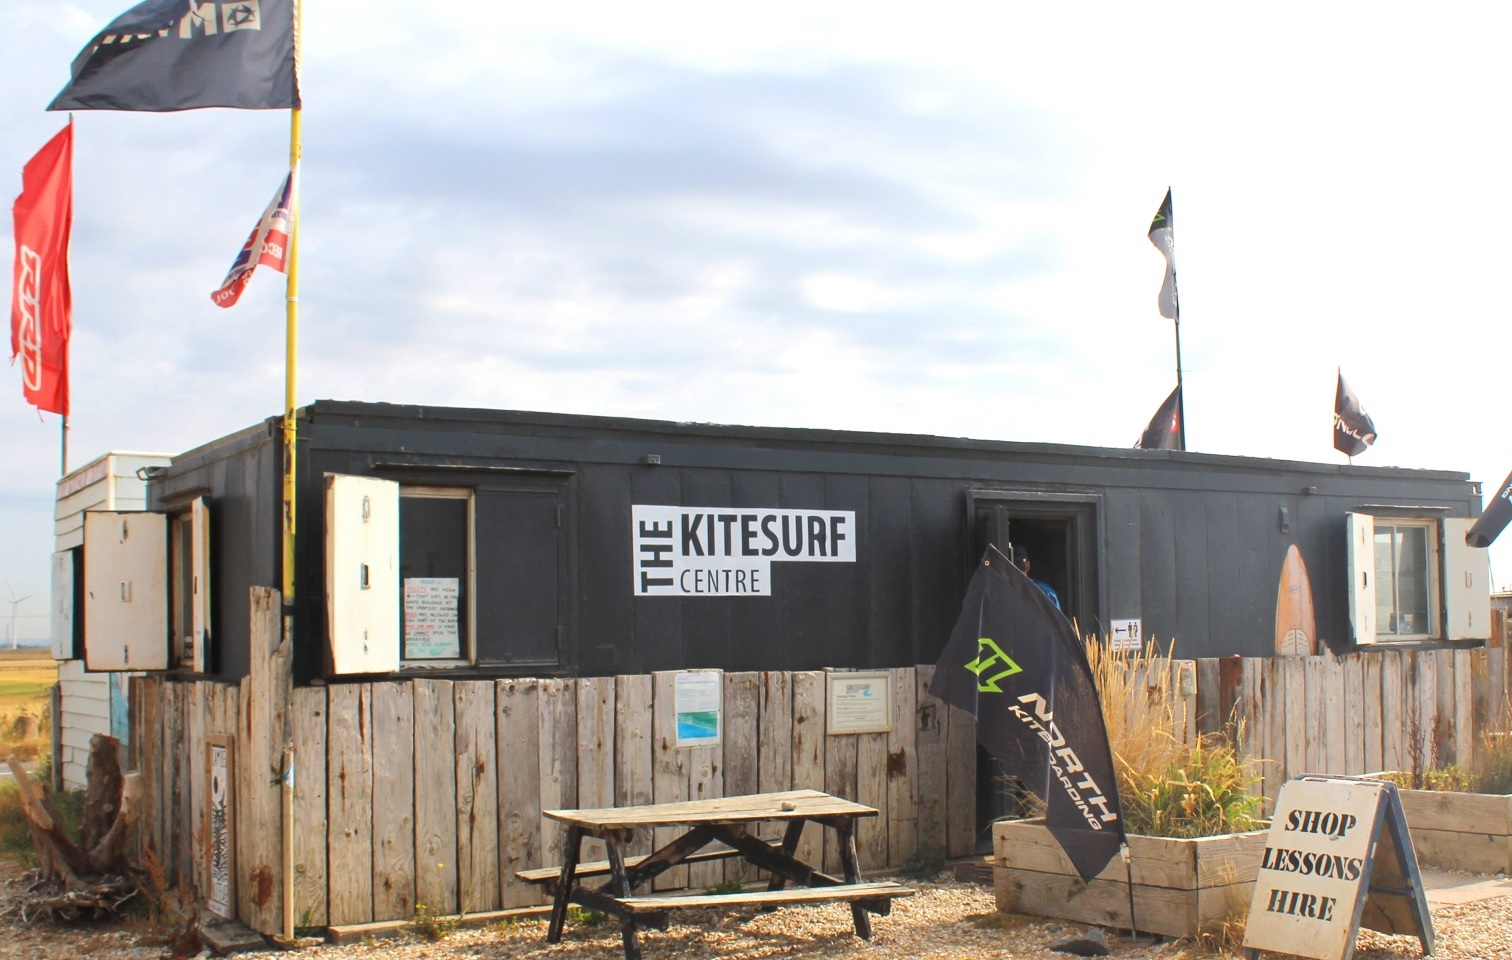 kitesurfing cventre near London